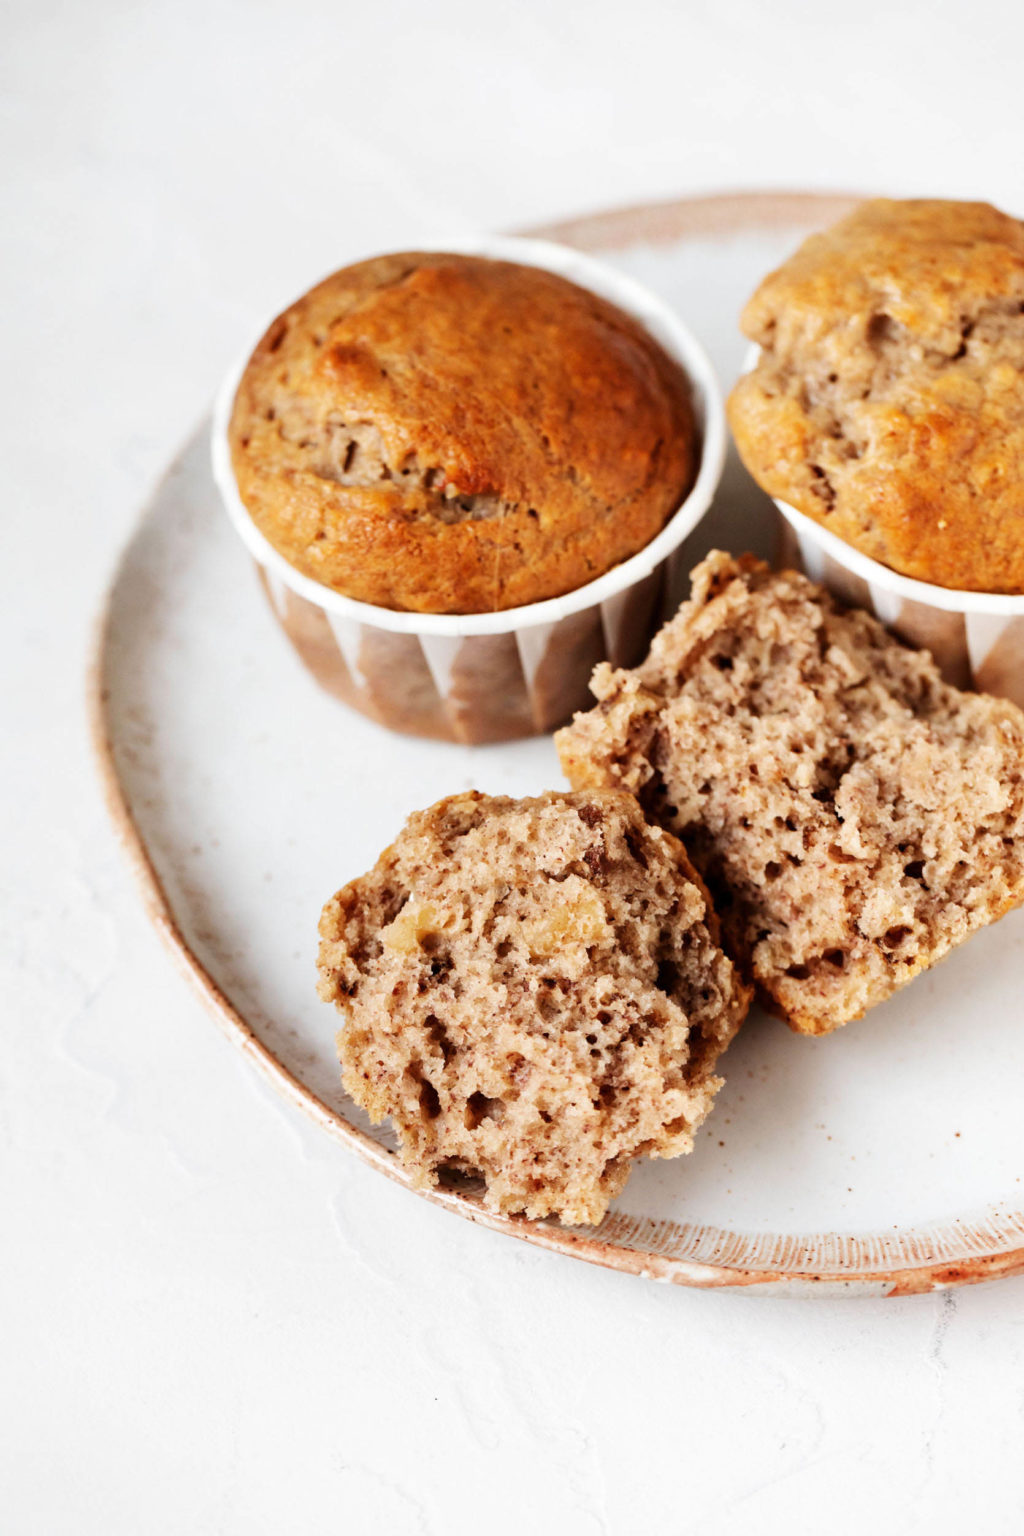 A small dessert plate holds vegan banana walnut muffins. Two are intact, in their liners, while a third has been broken in half.